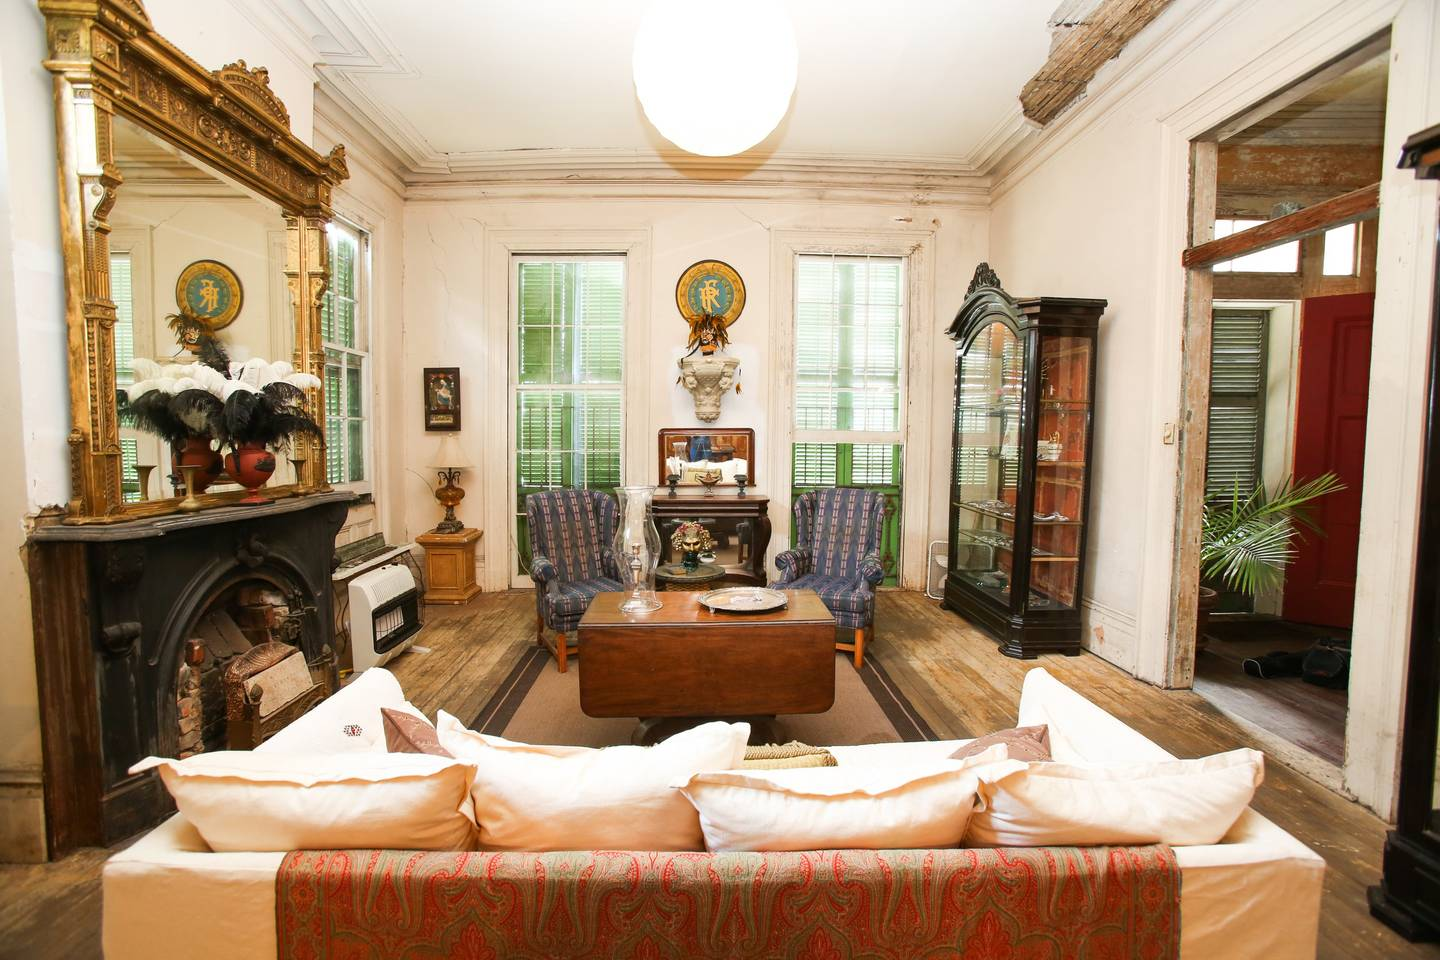 This Creole Mansion is in walking distance of the French Quarter. Photo courtesy of Airbnb.